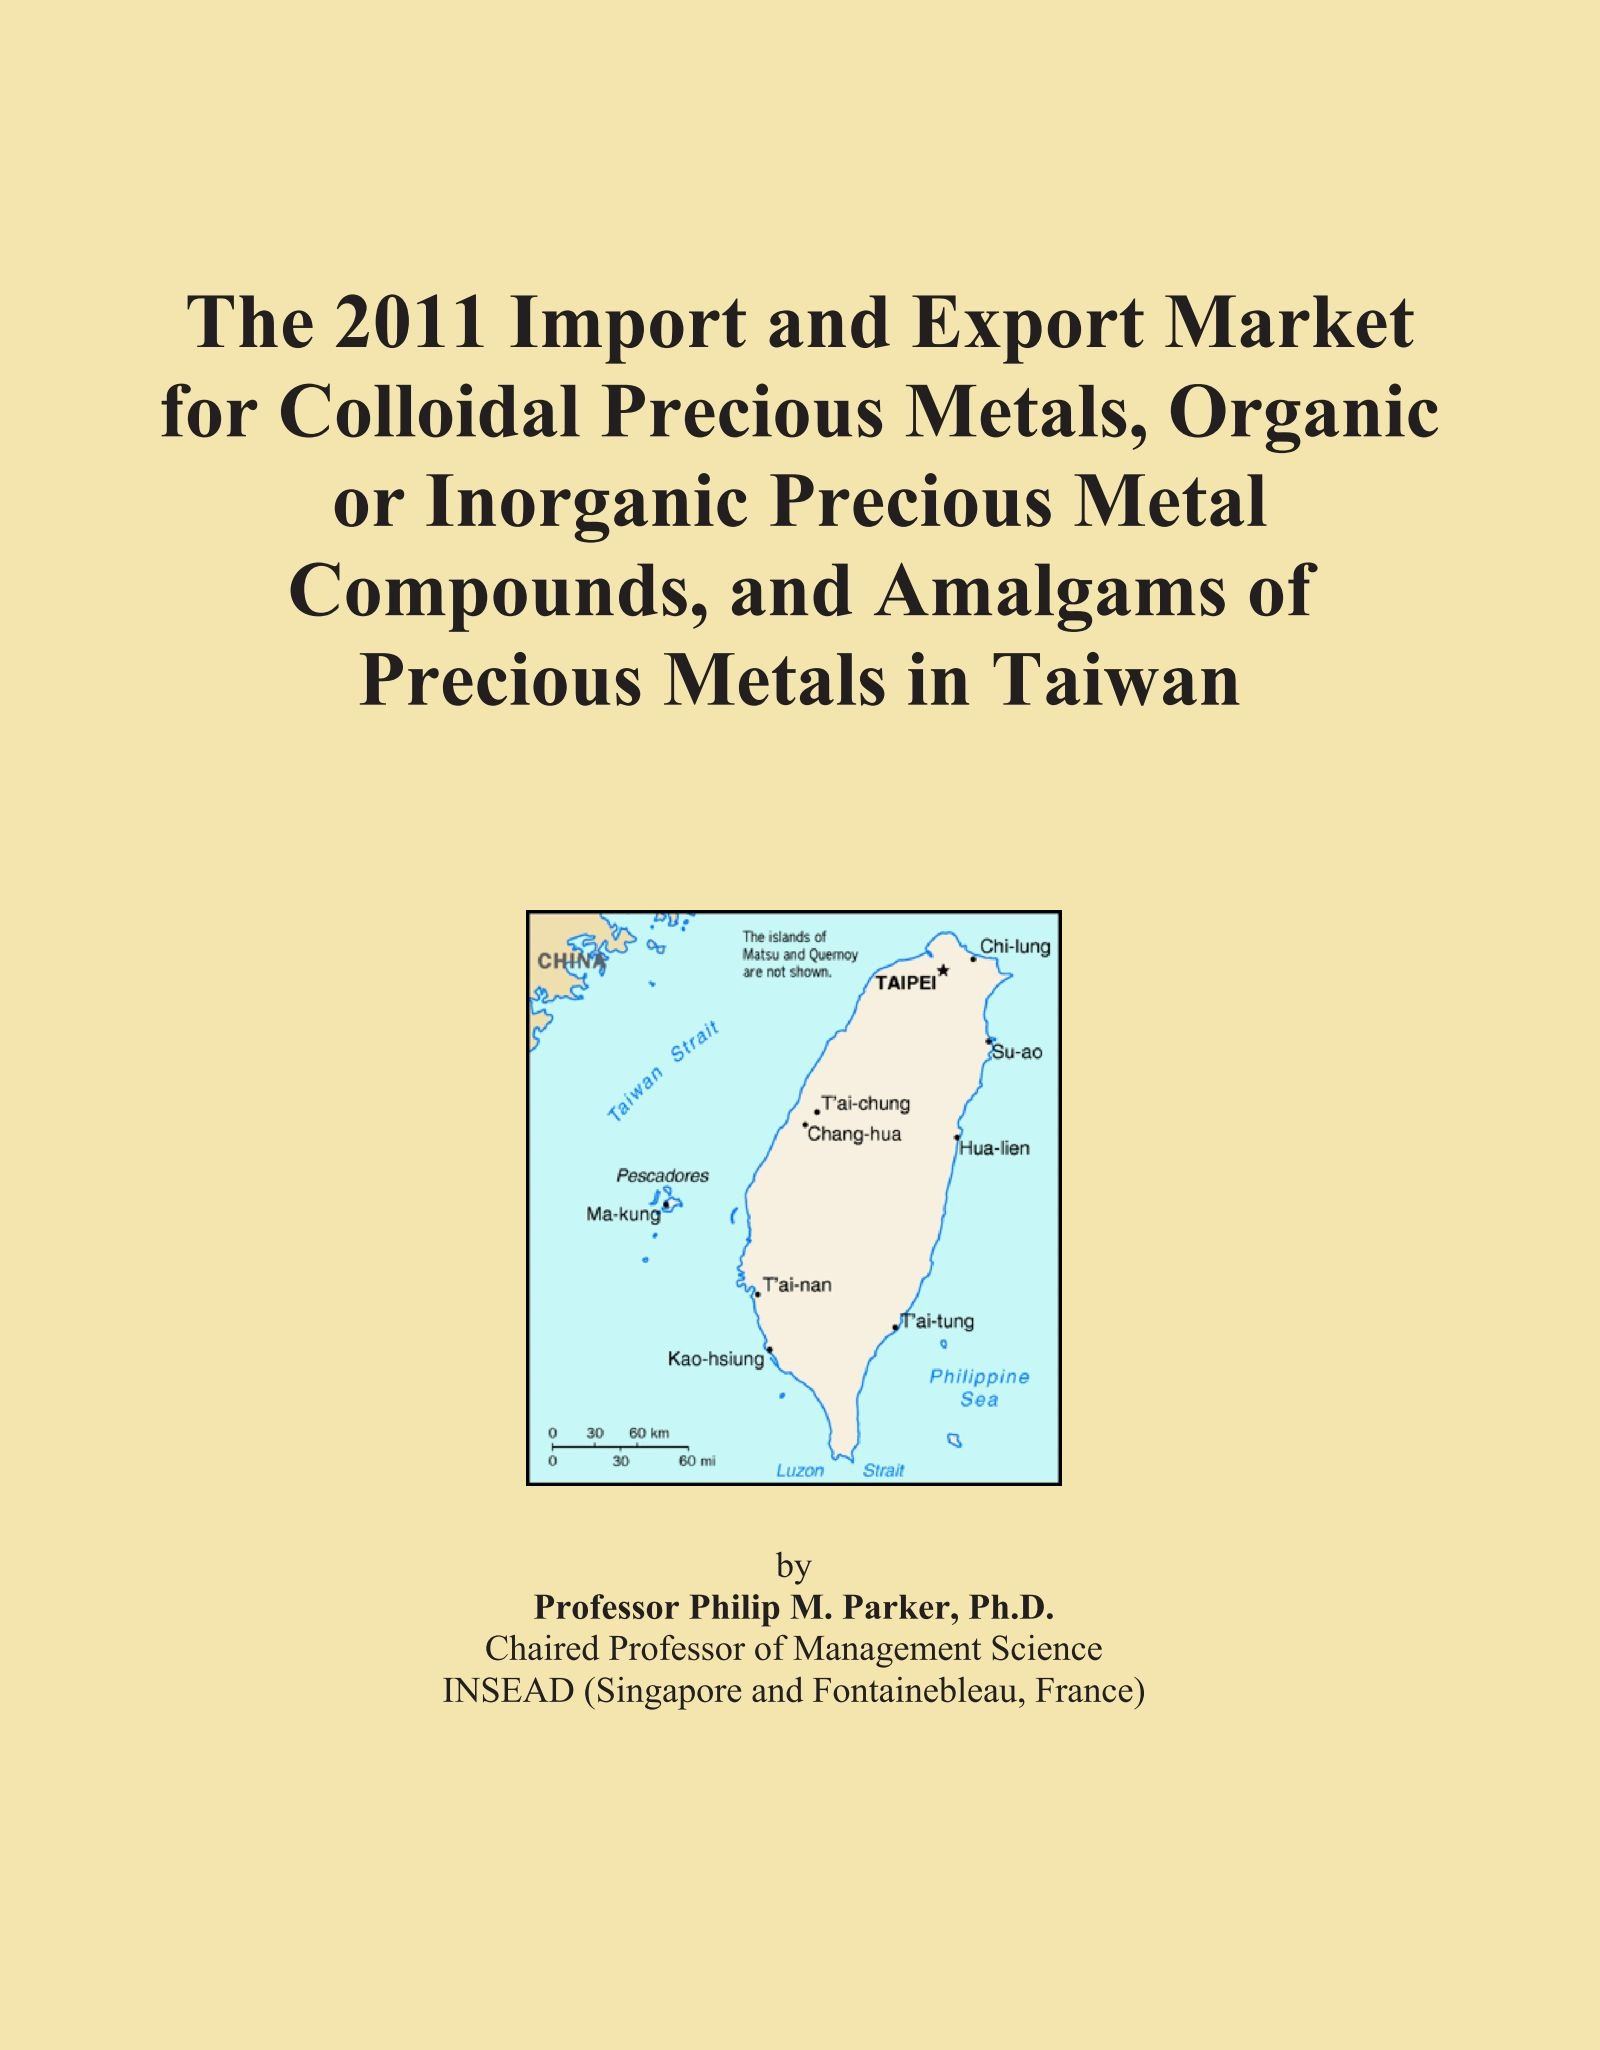 The 2011 Import and Export Market for Colloidal Precious Metals, Organic or Inorganic Precious Metal Compounds, and Amalgams of Precious Metals in Taiwan pdf